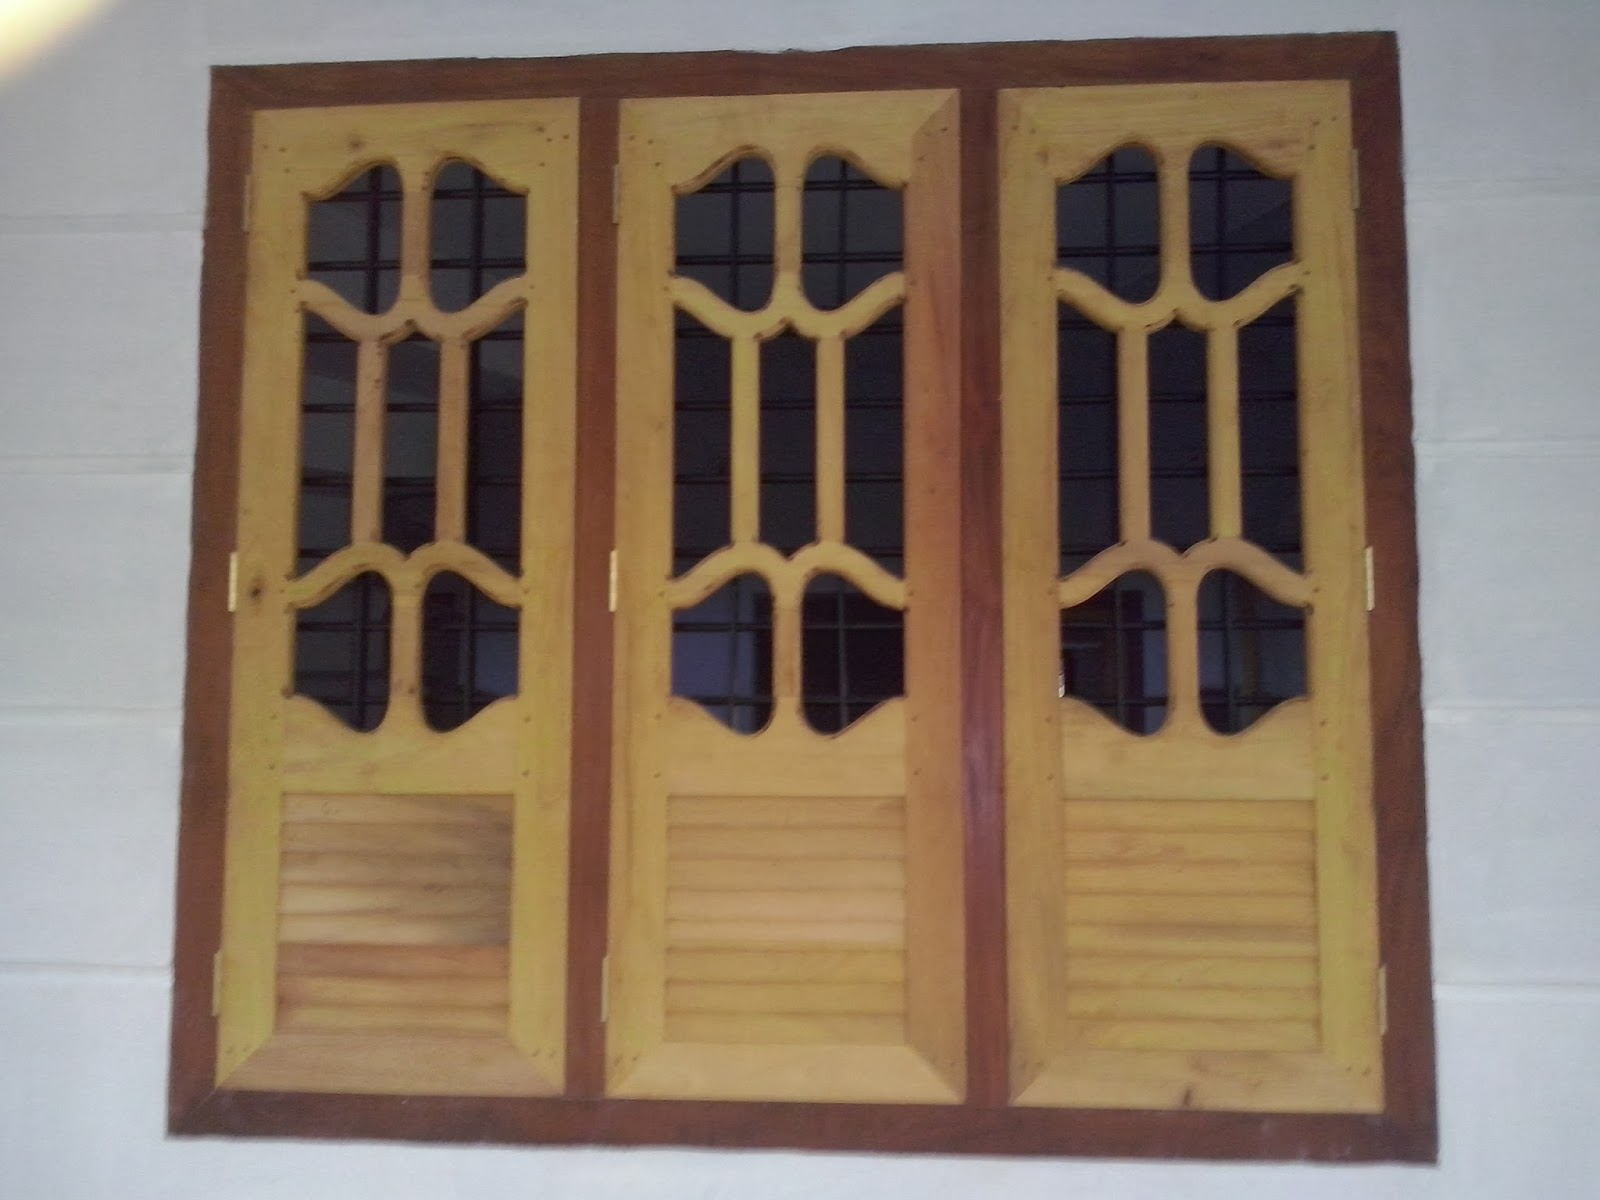 Bavas wood works window door design pictures for Wooden windows